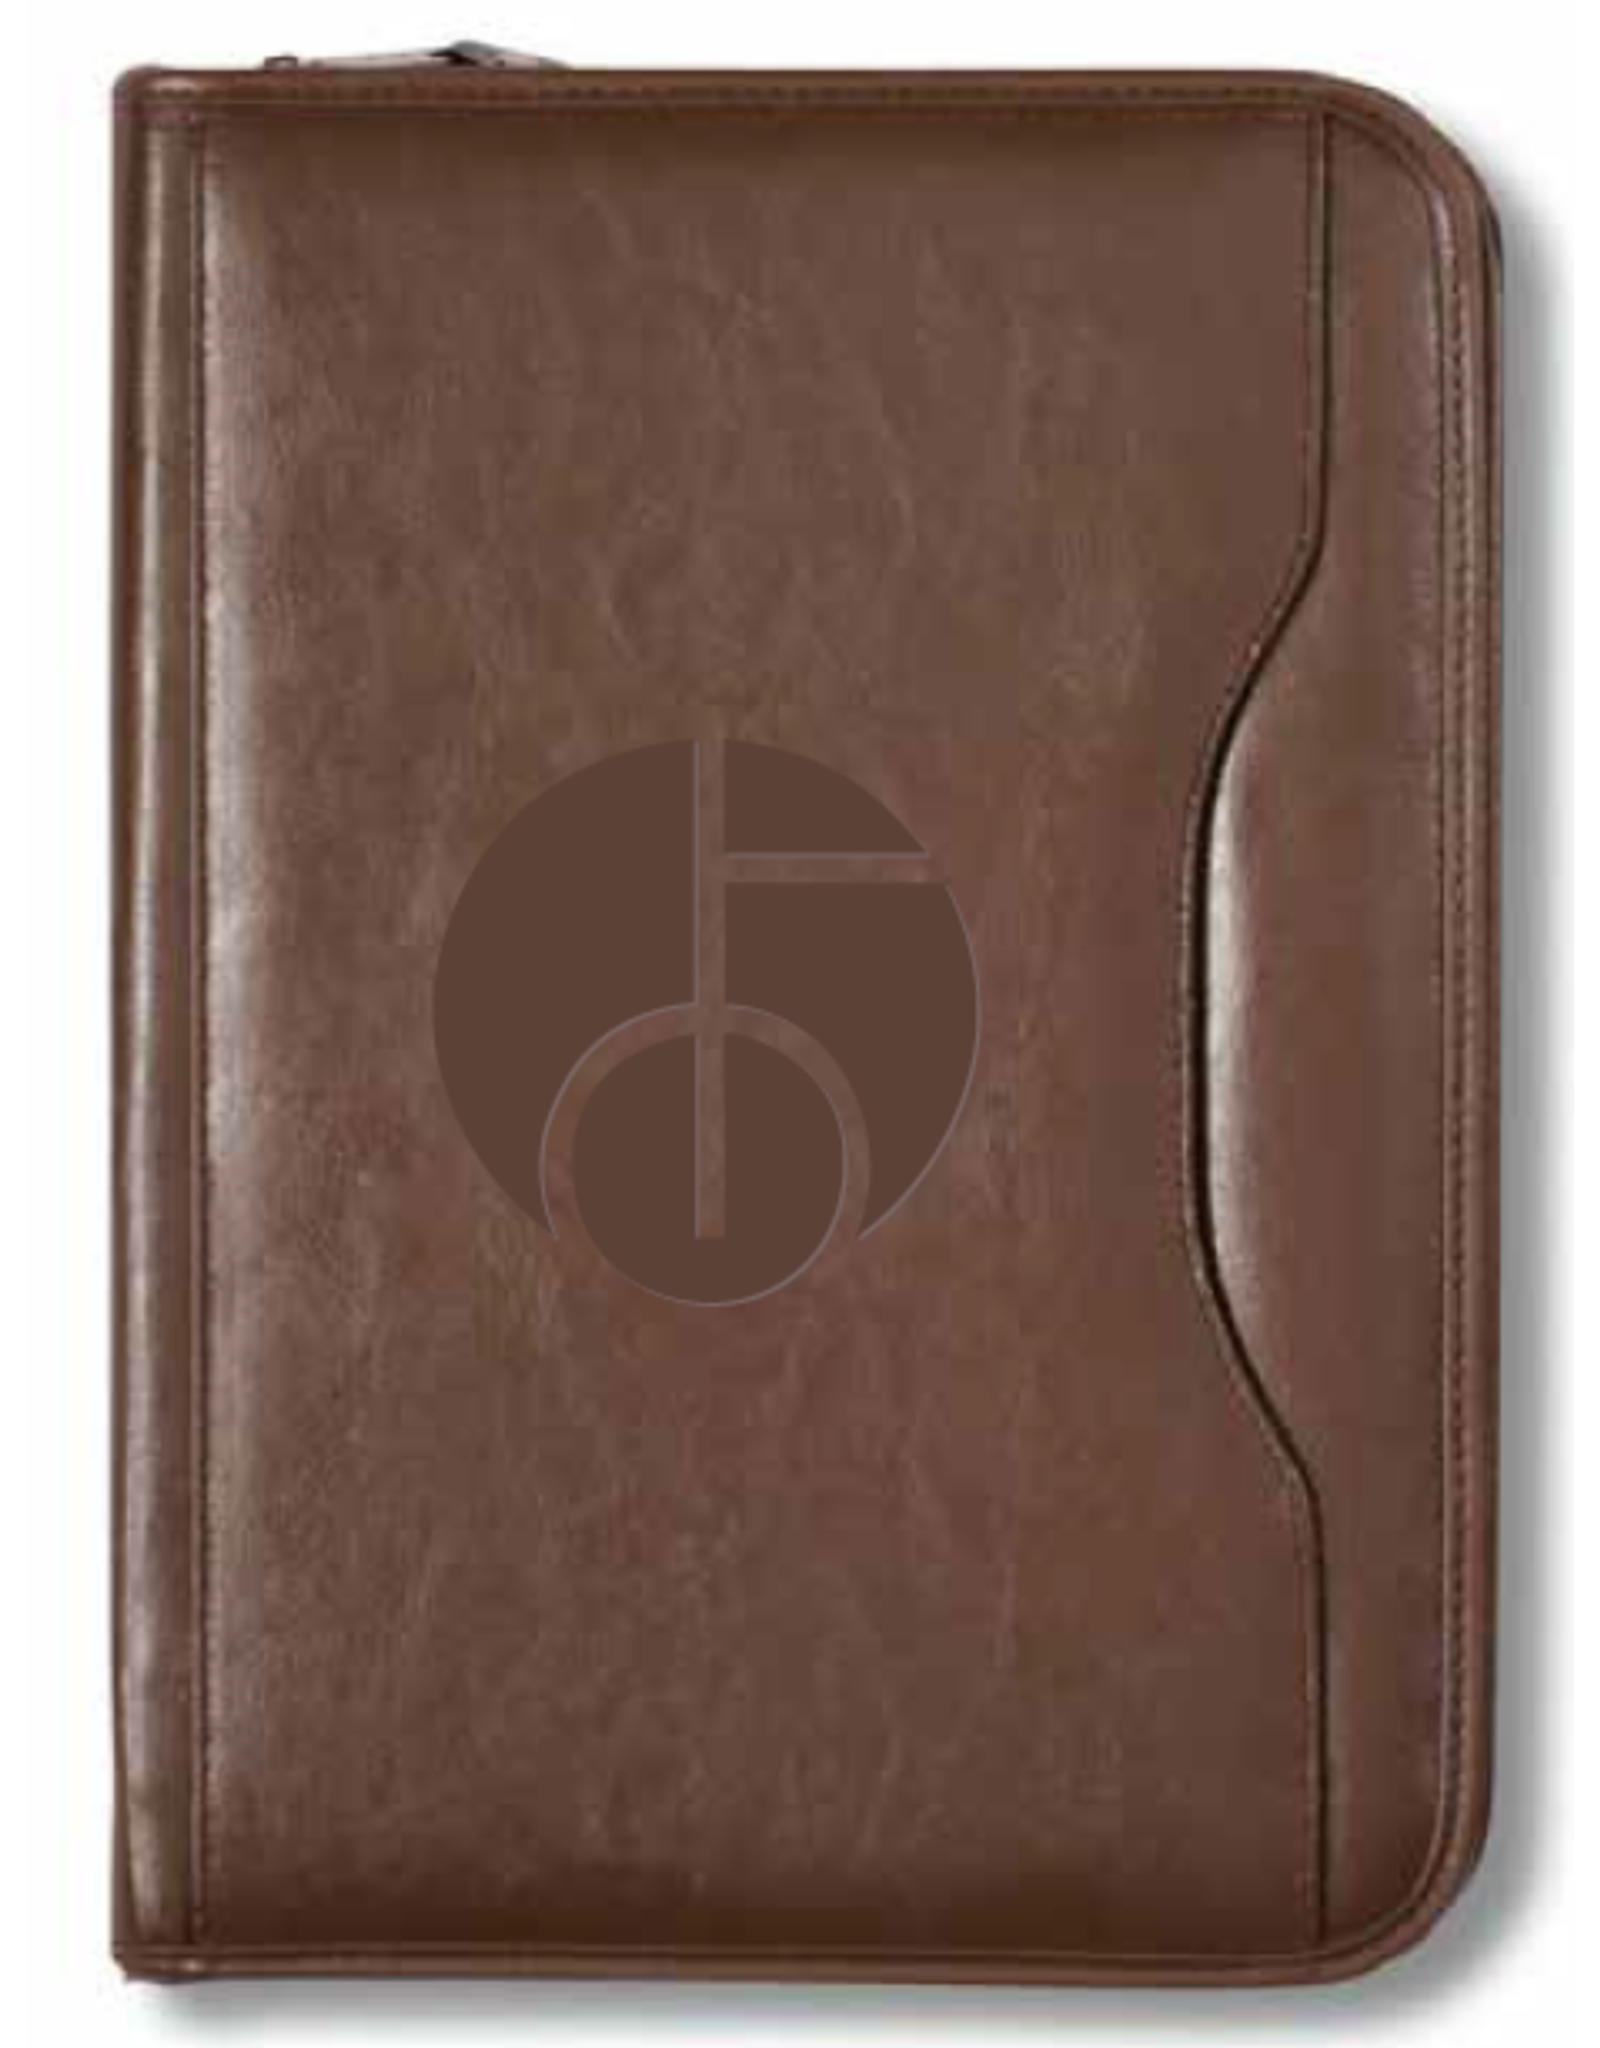 Executive Vintage Leather Padfolio